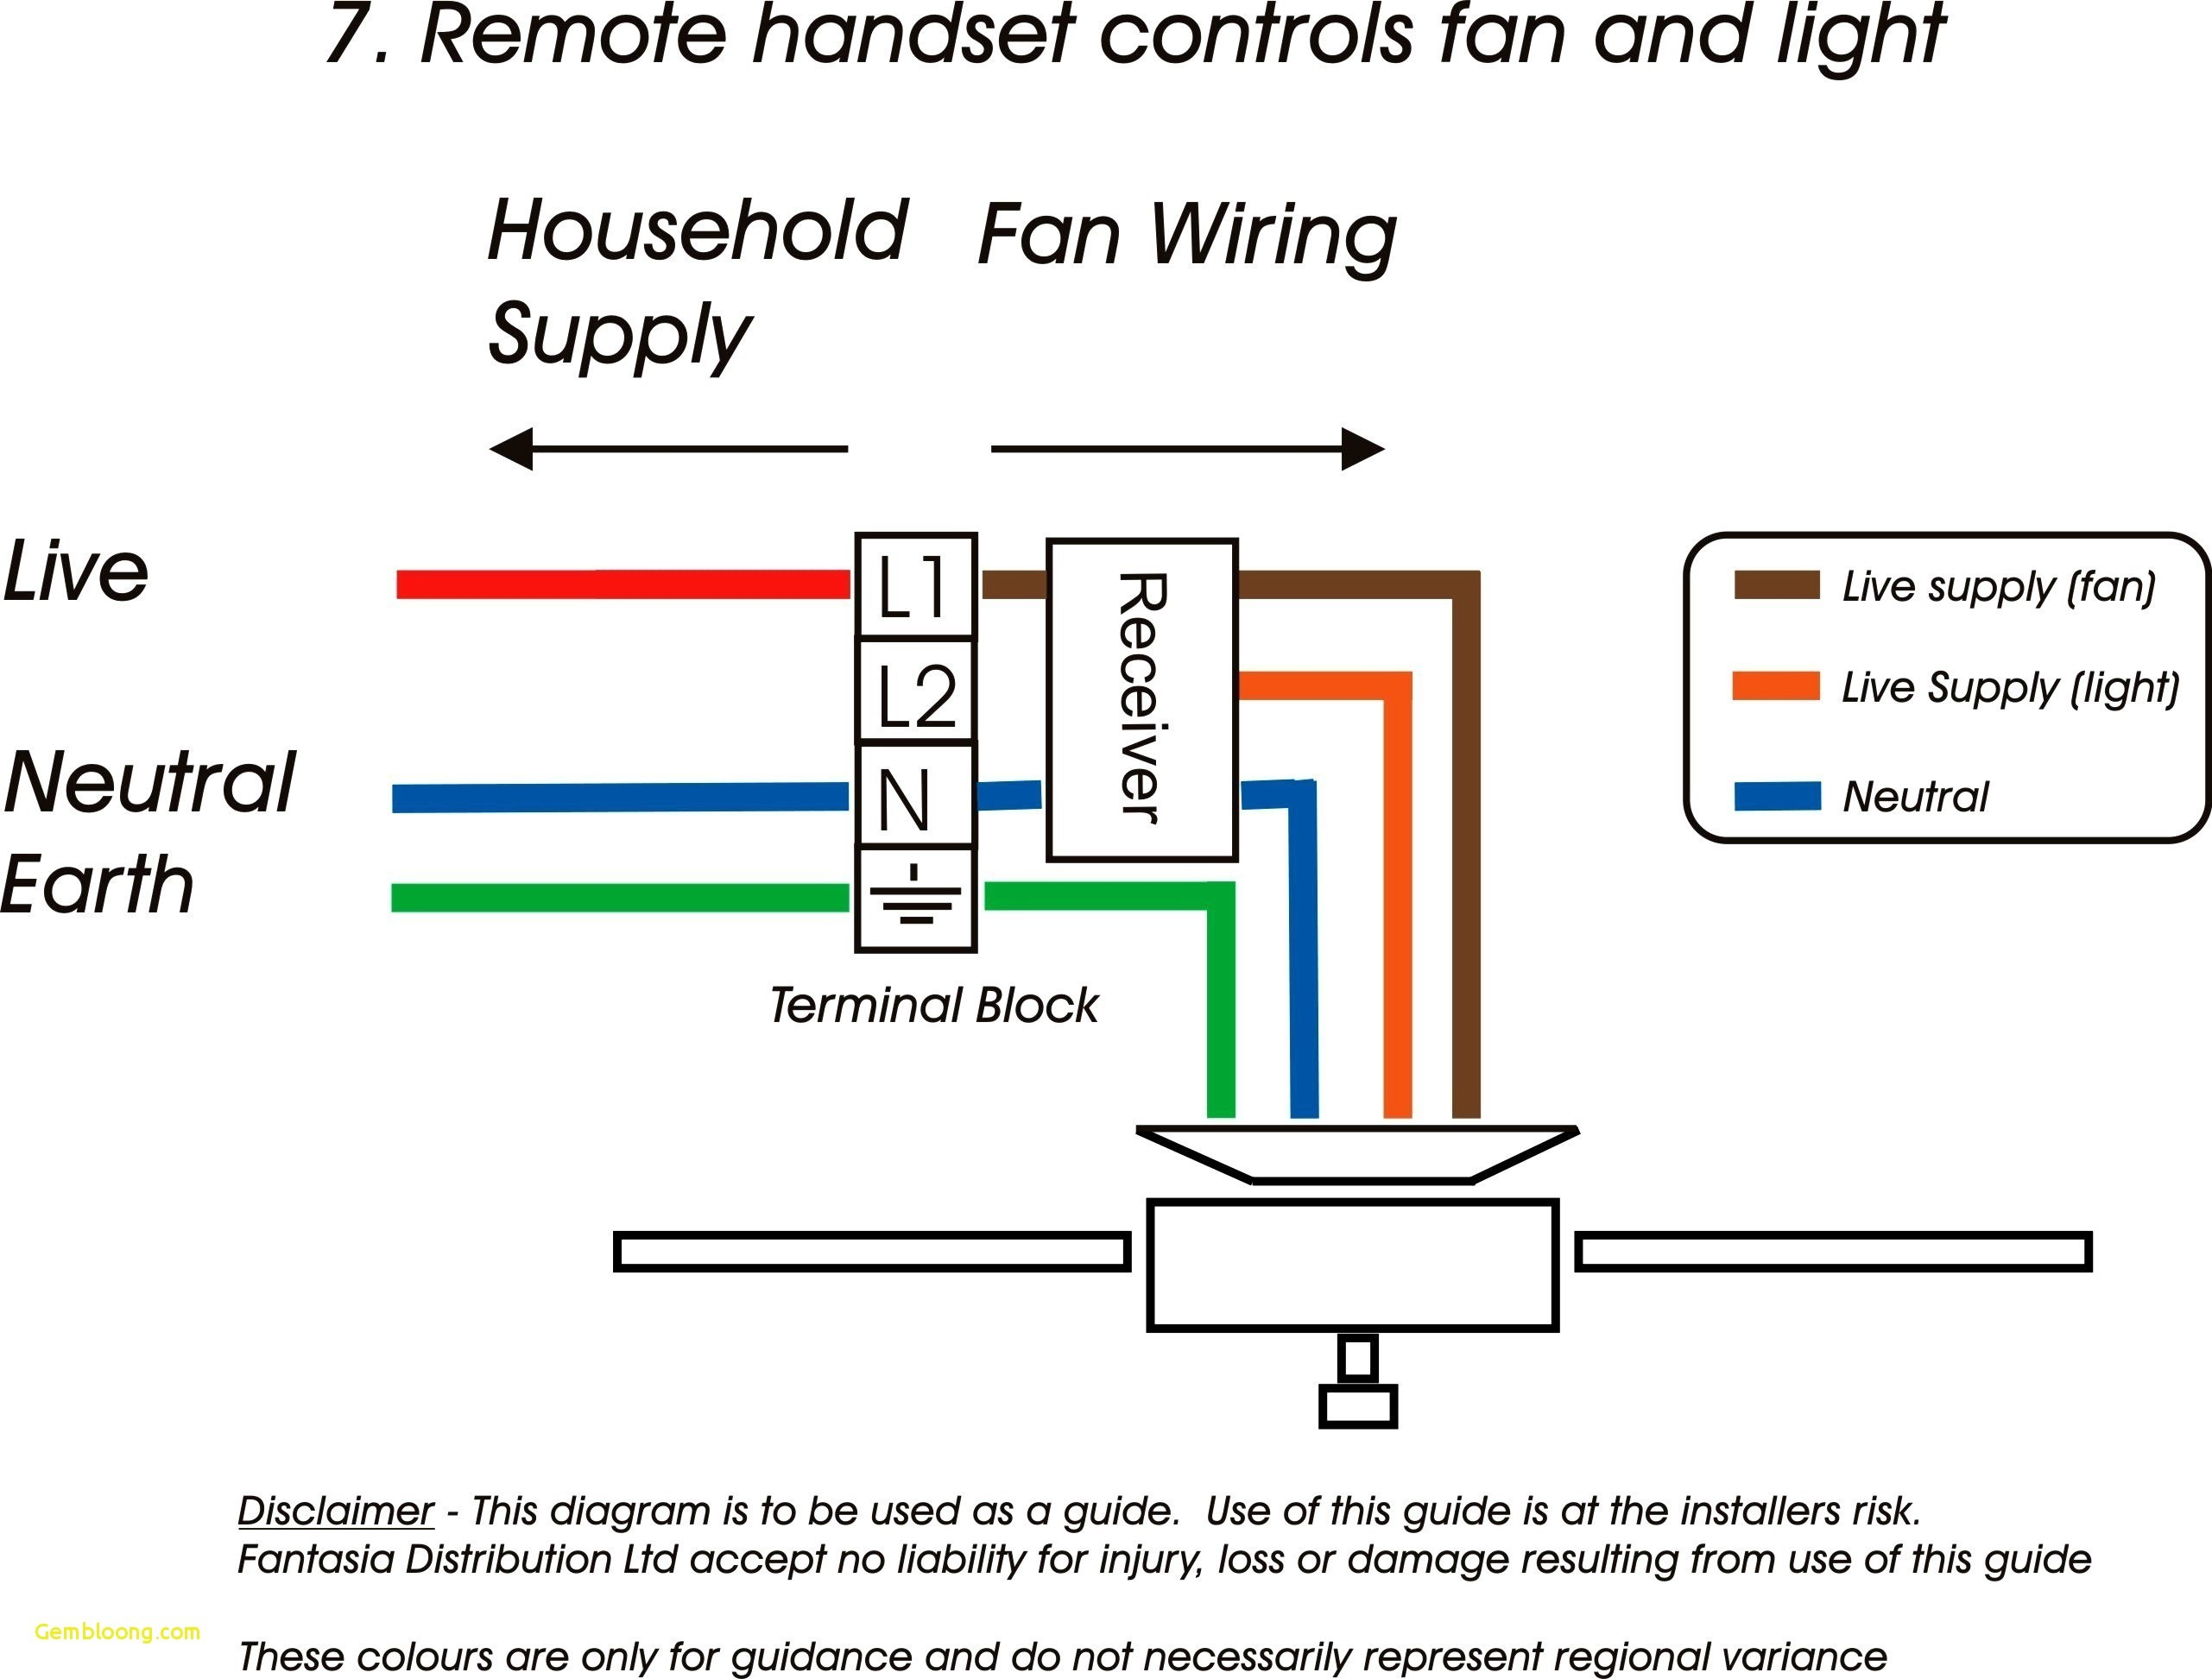 Ceiling Fans Wiring Diagram How to Hang A Ceiling Fan Awesome Wiring Diagram Od Ltg ortech Of Ceiling Fans Wiring Diagram